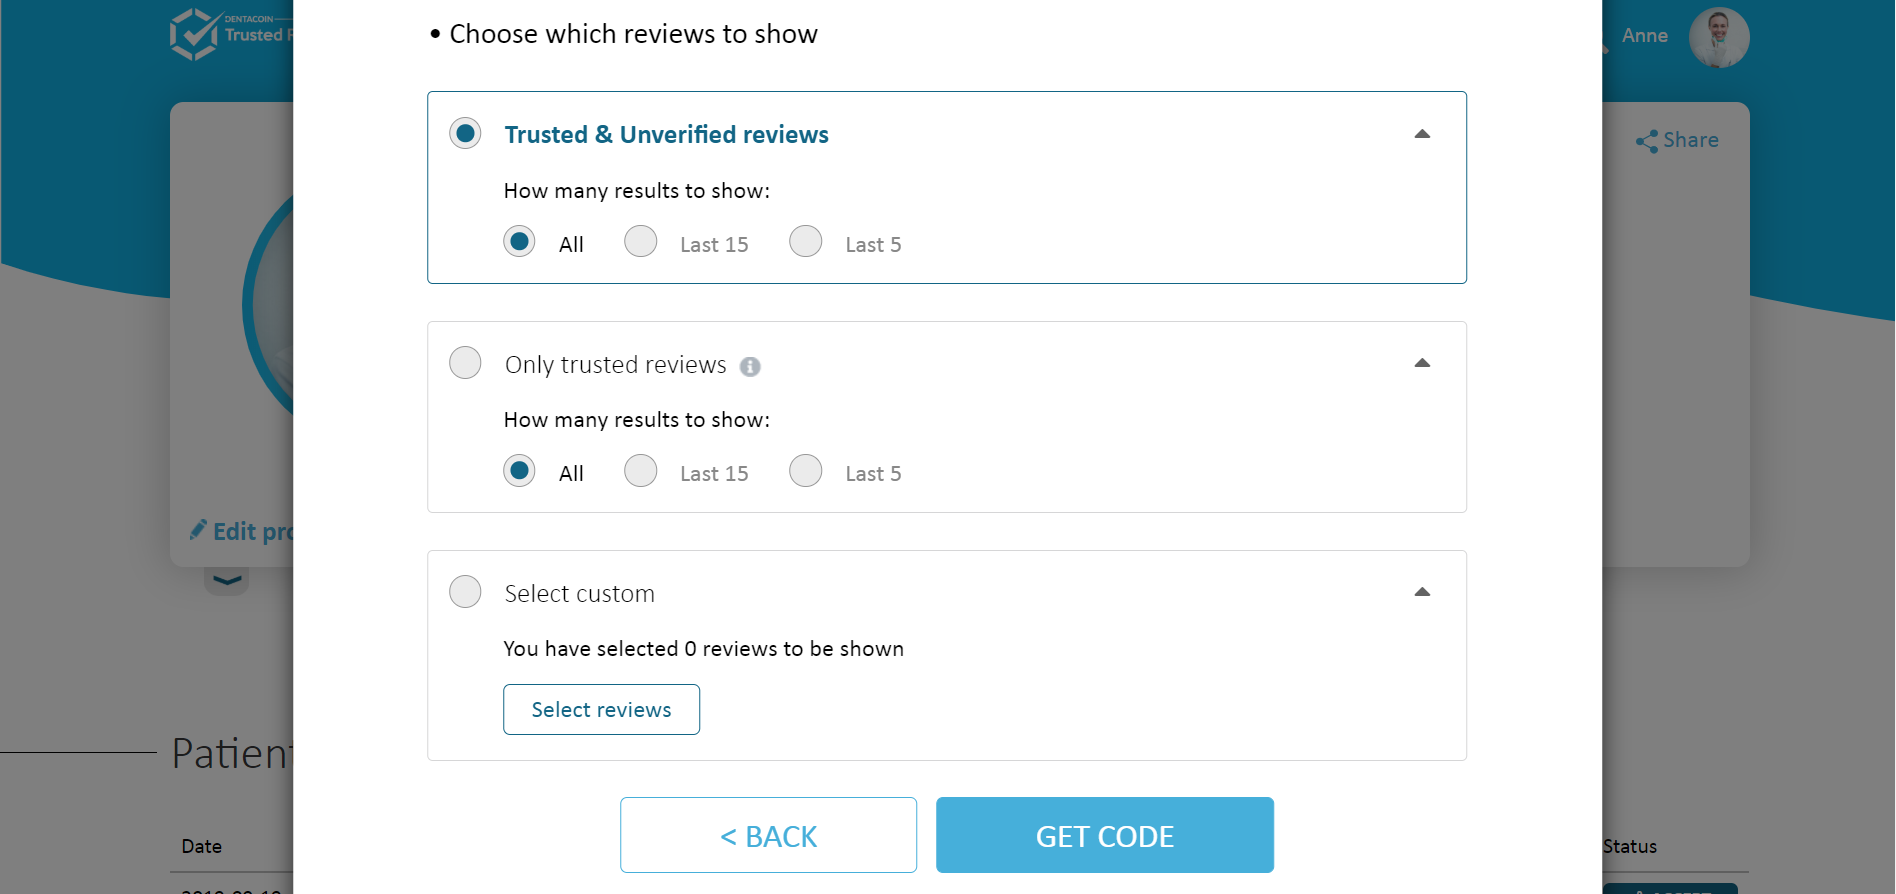 Widget choose which reviews to show